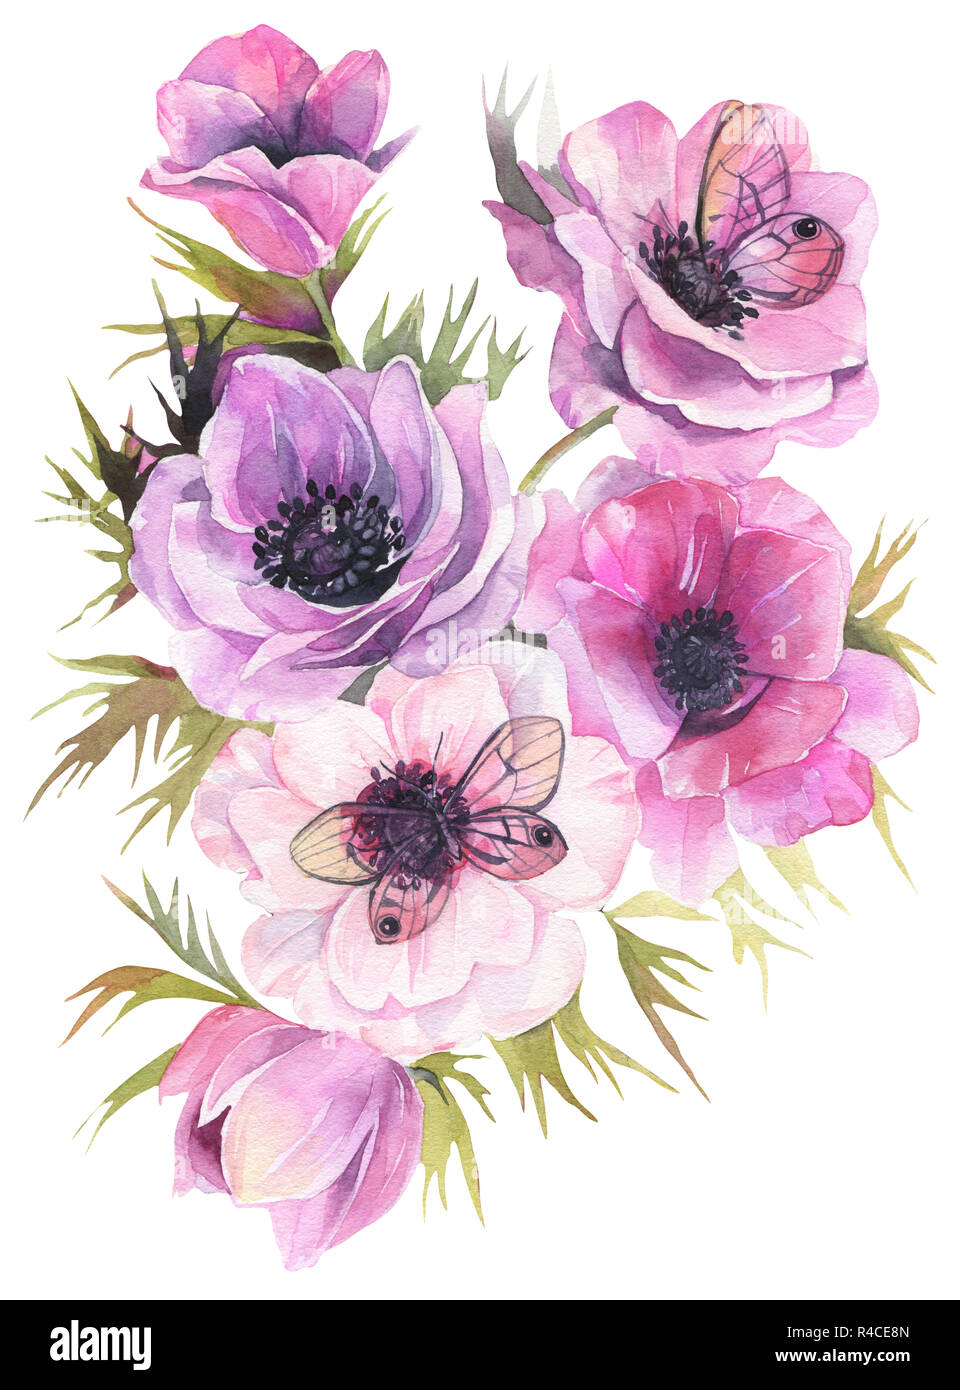 Hand Drawn Watercolor Flowers Tender Bouquet With Anemones And